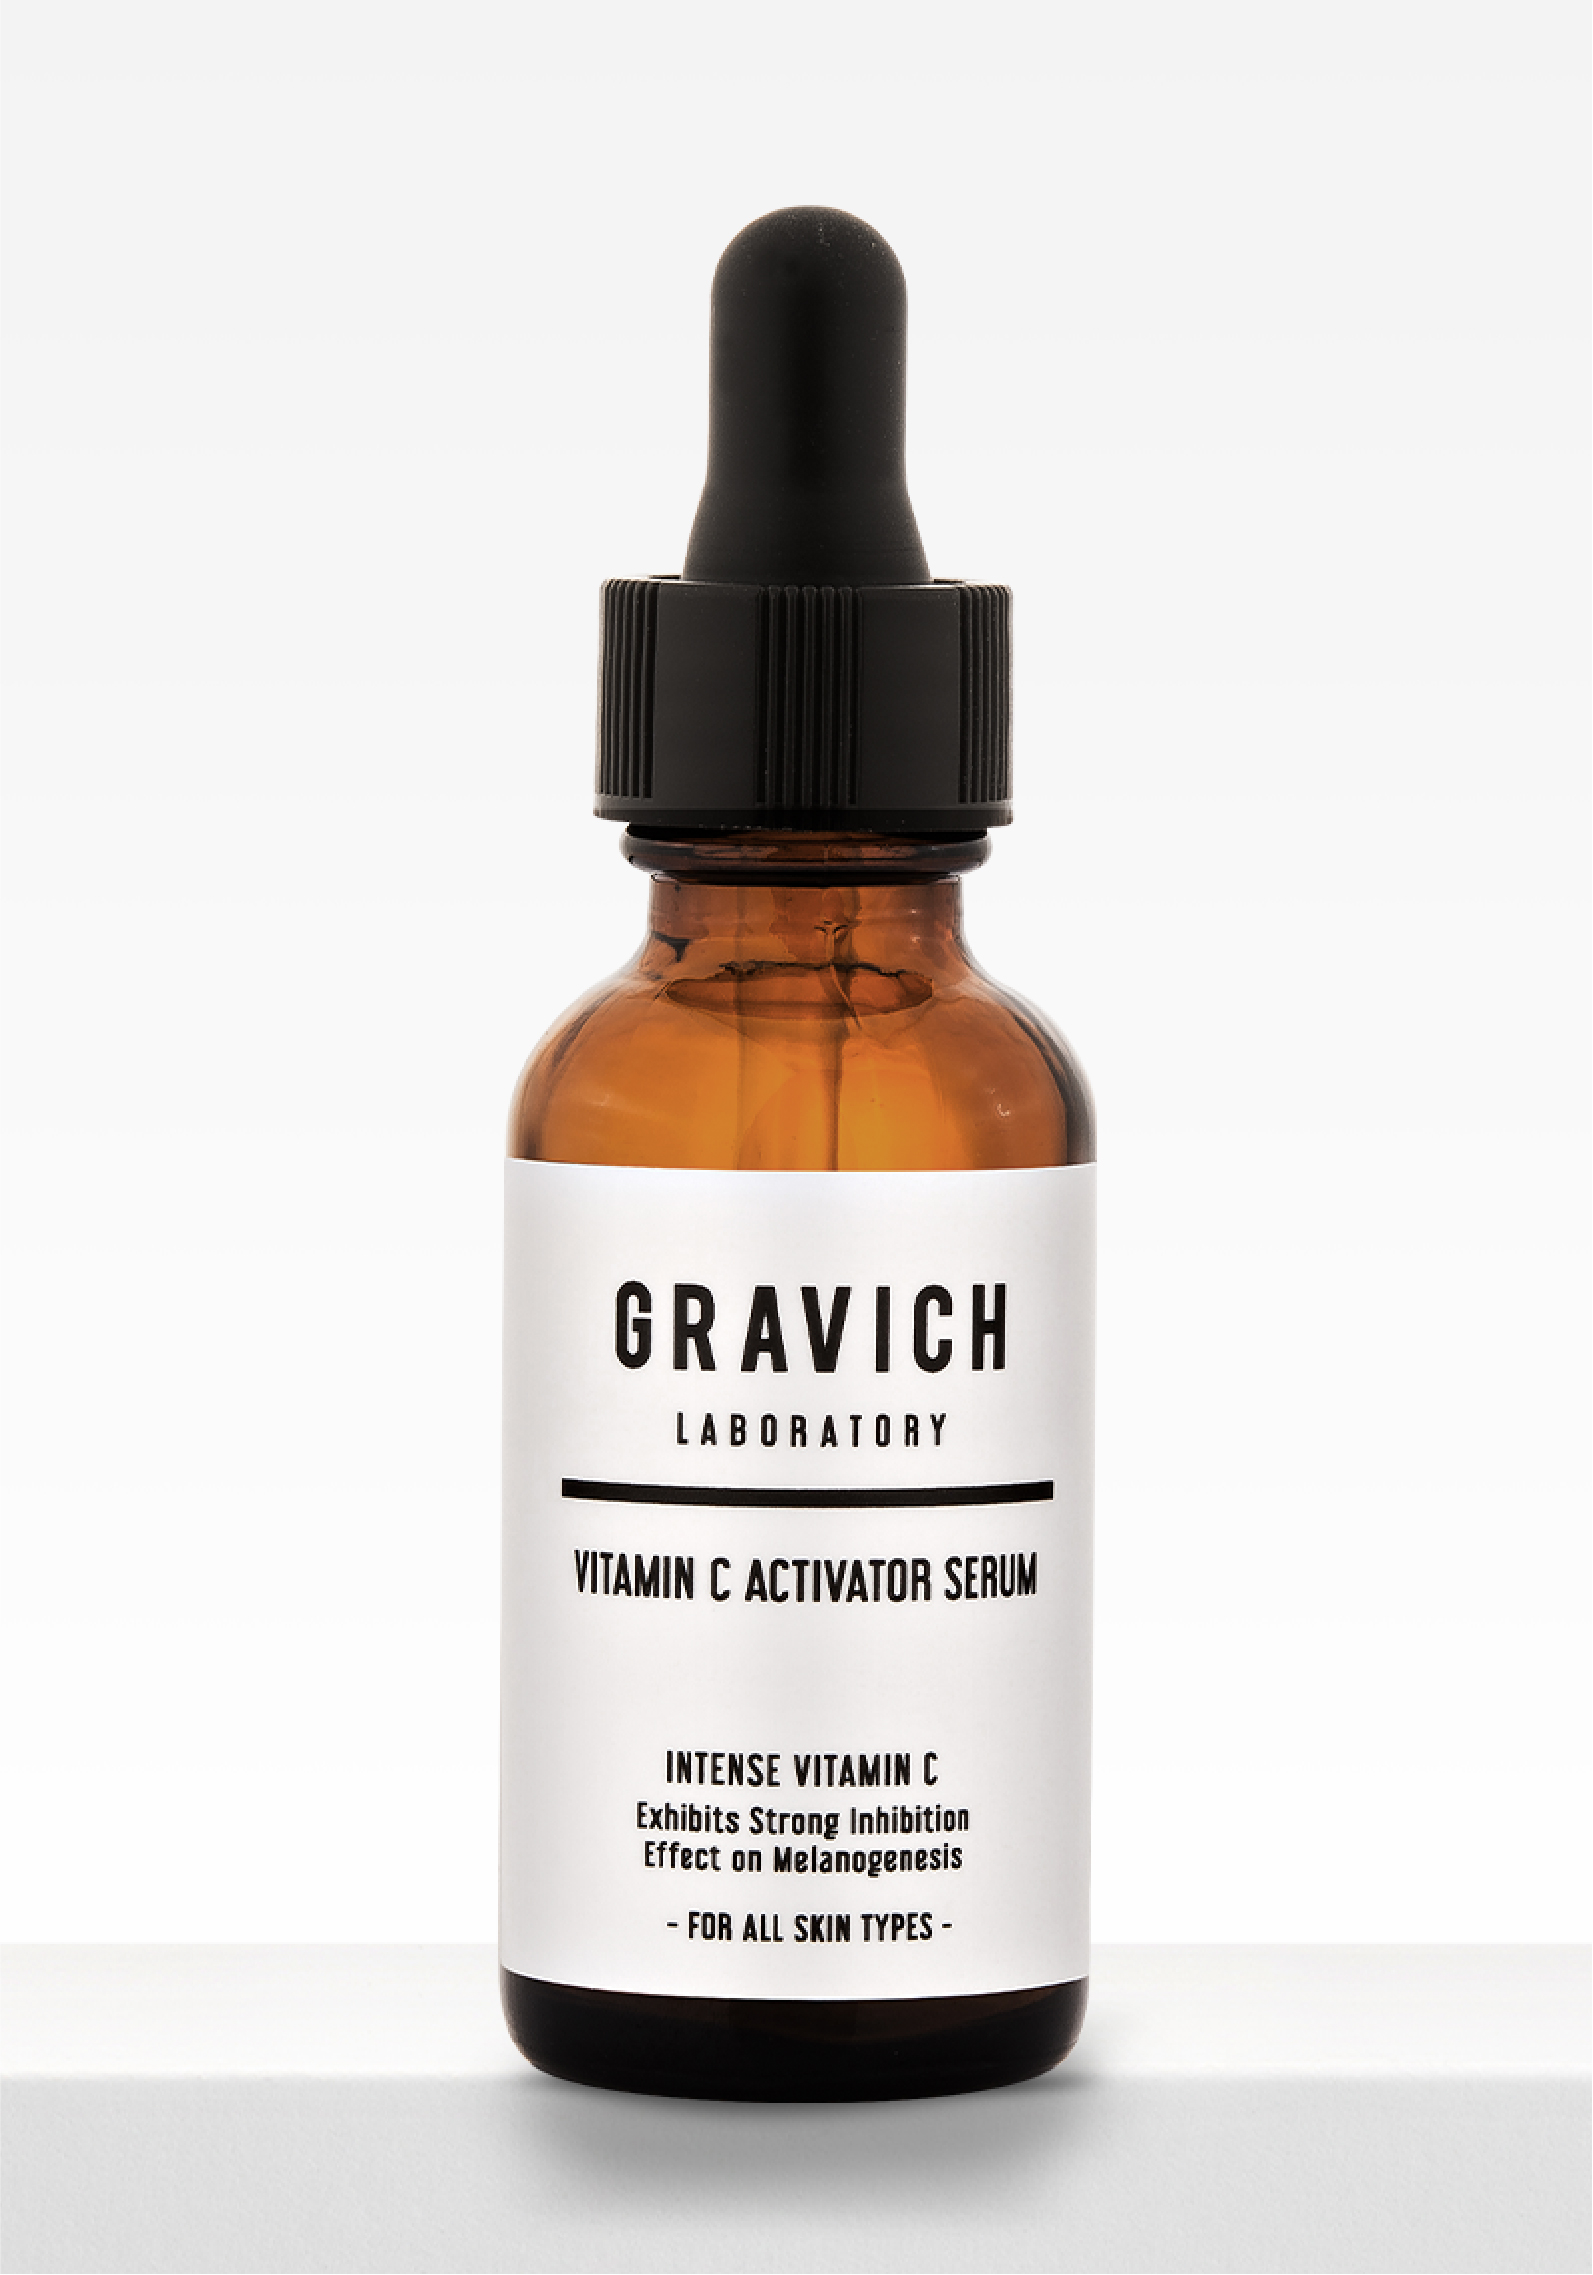 Gravich Vitamin C Activator Serum 30 Ml